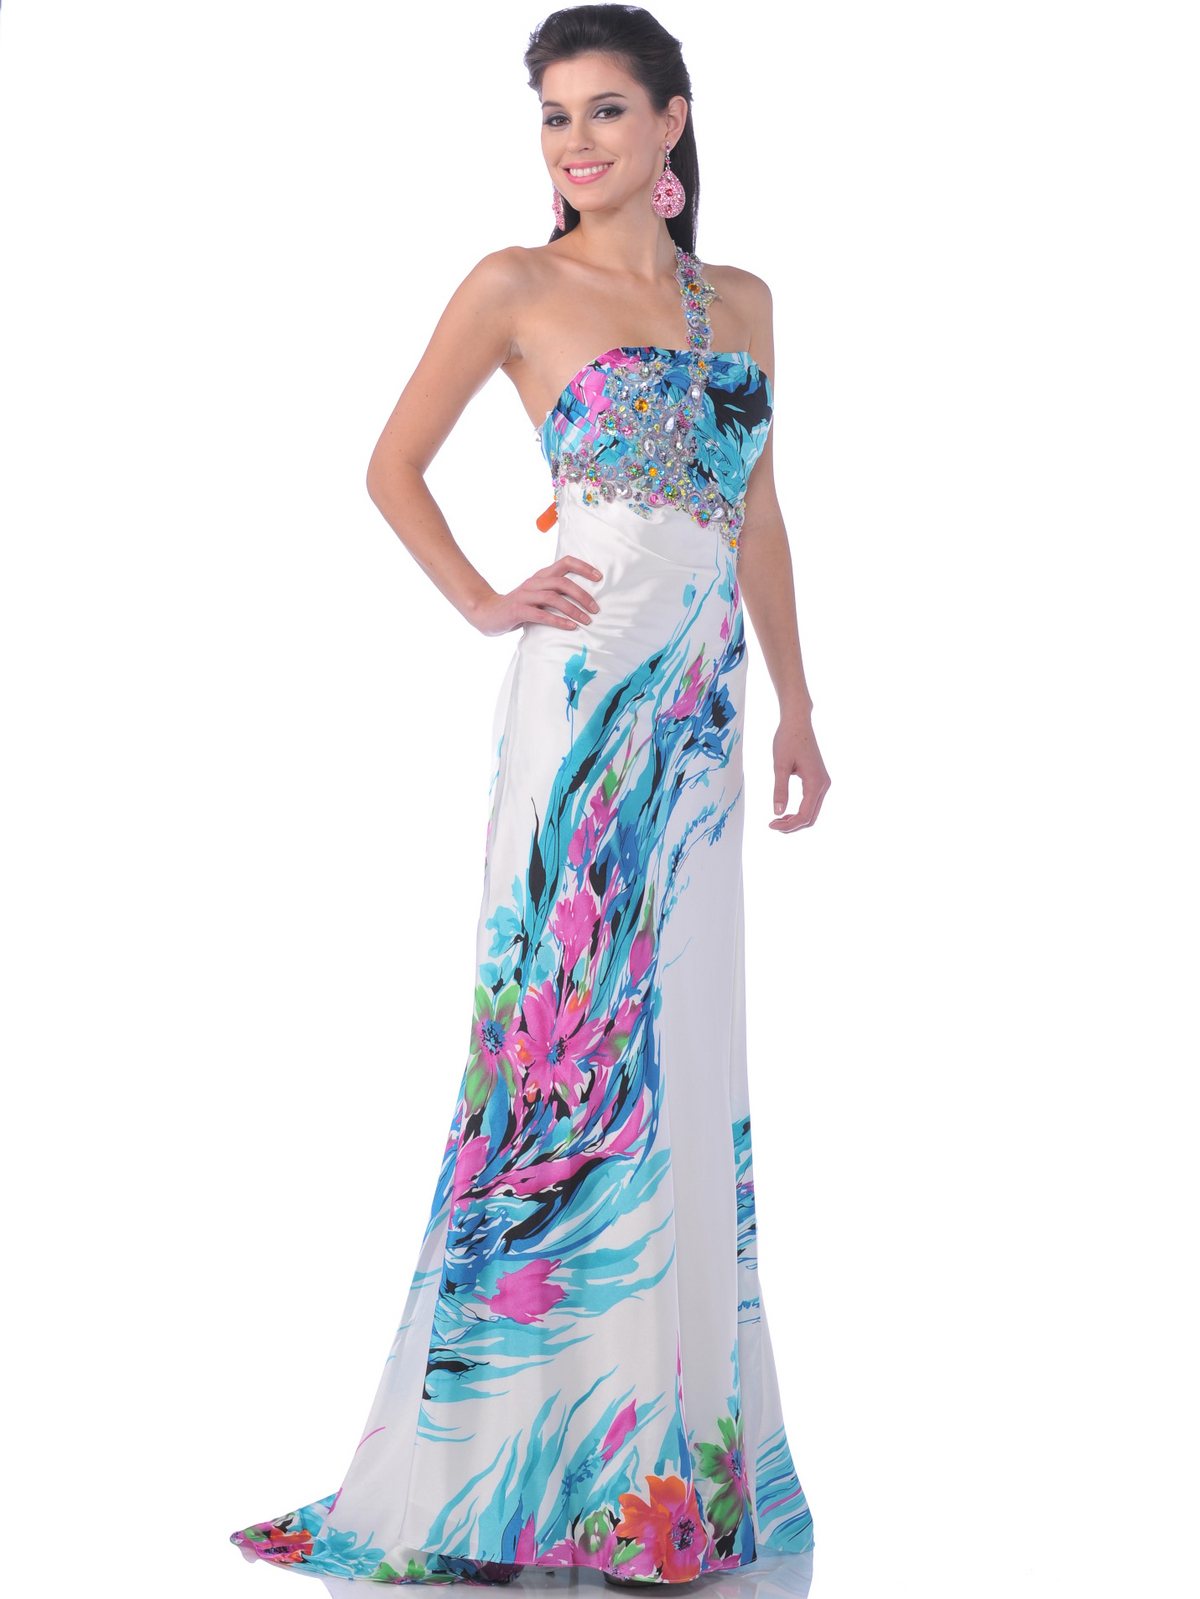 2102 Jeweled One Shoulder Print Evening Dress - Front Image